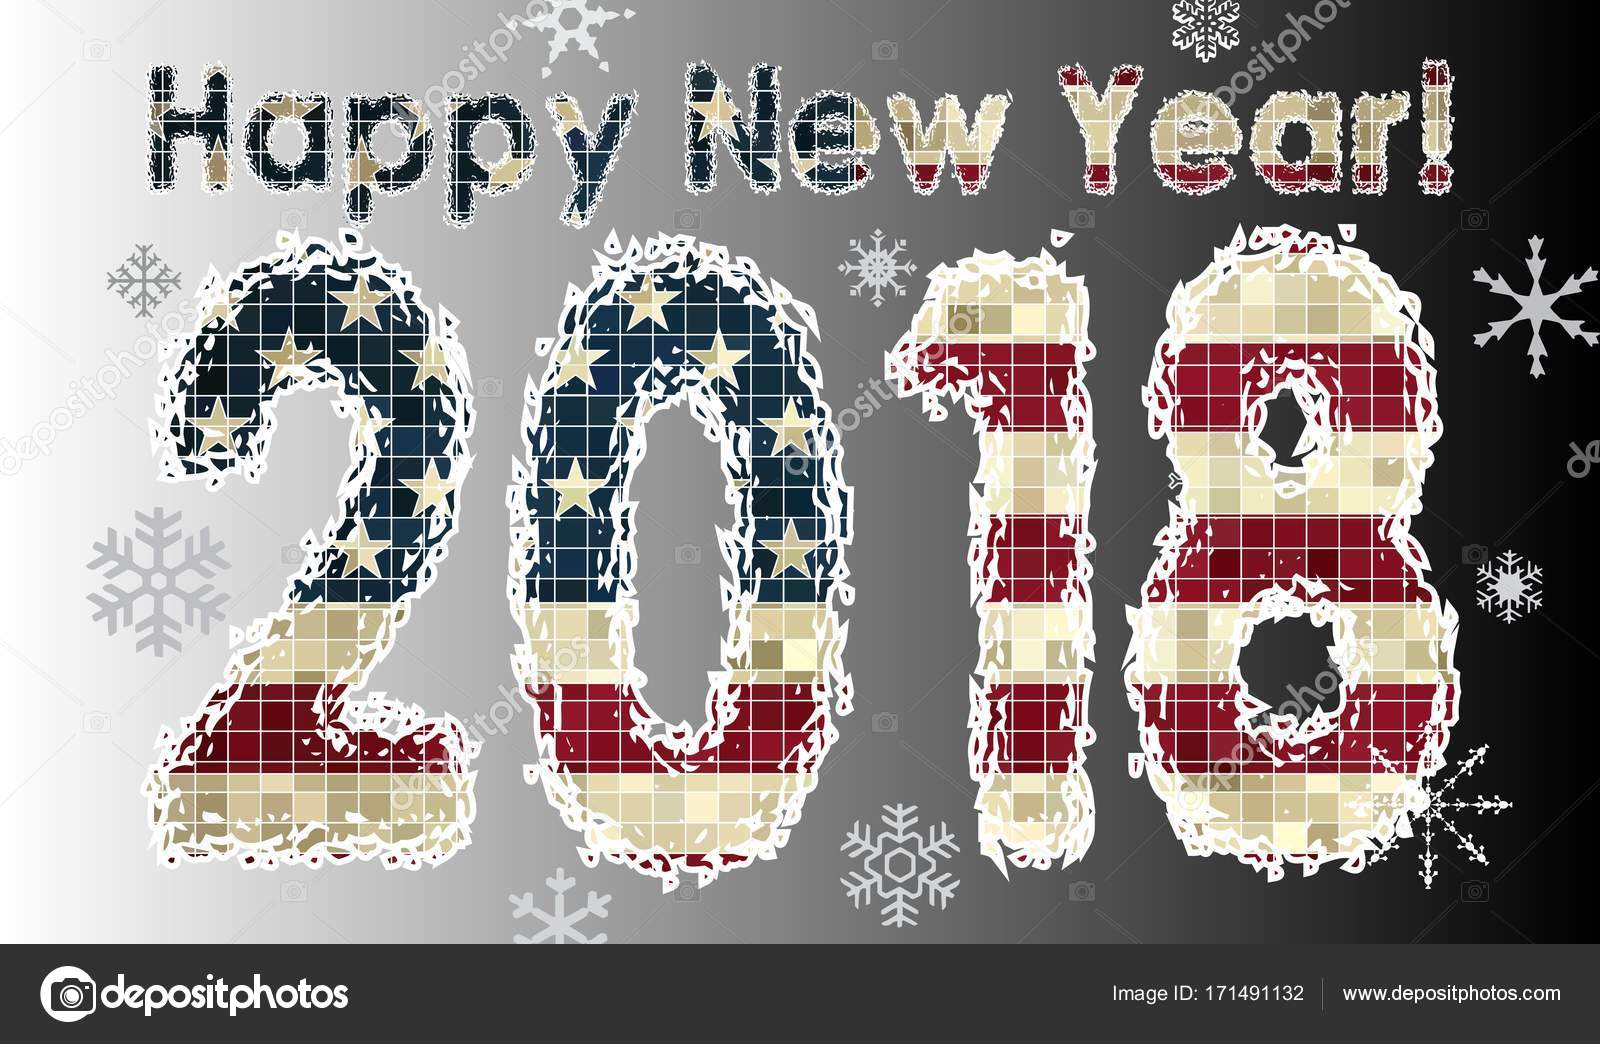 happy new year 2018 with flag of usa2018 happy new year numerals pocket calendar 2018 business card 2018 calendar vector by dusica69